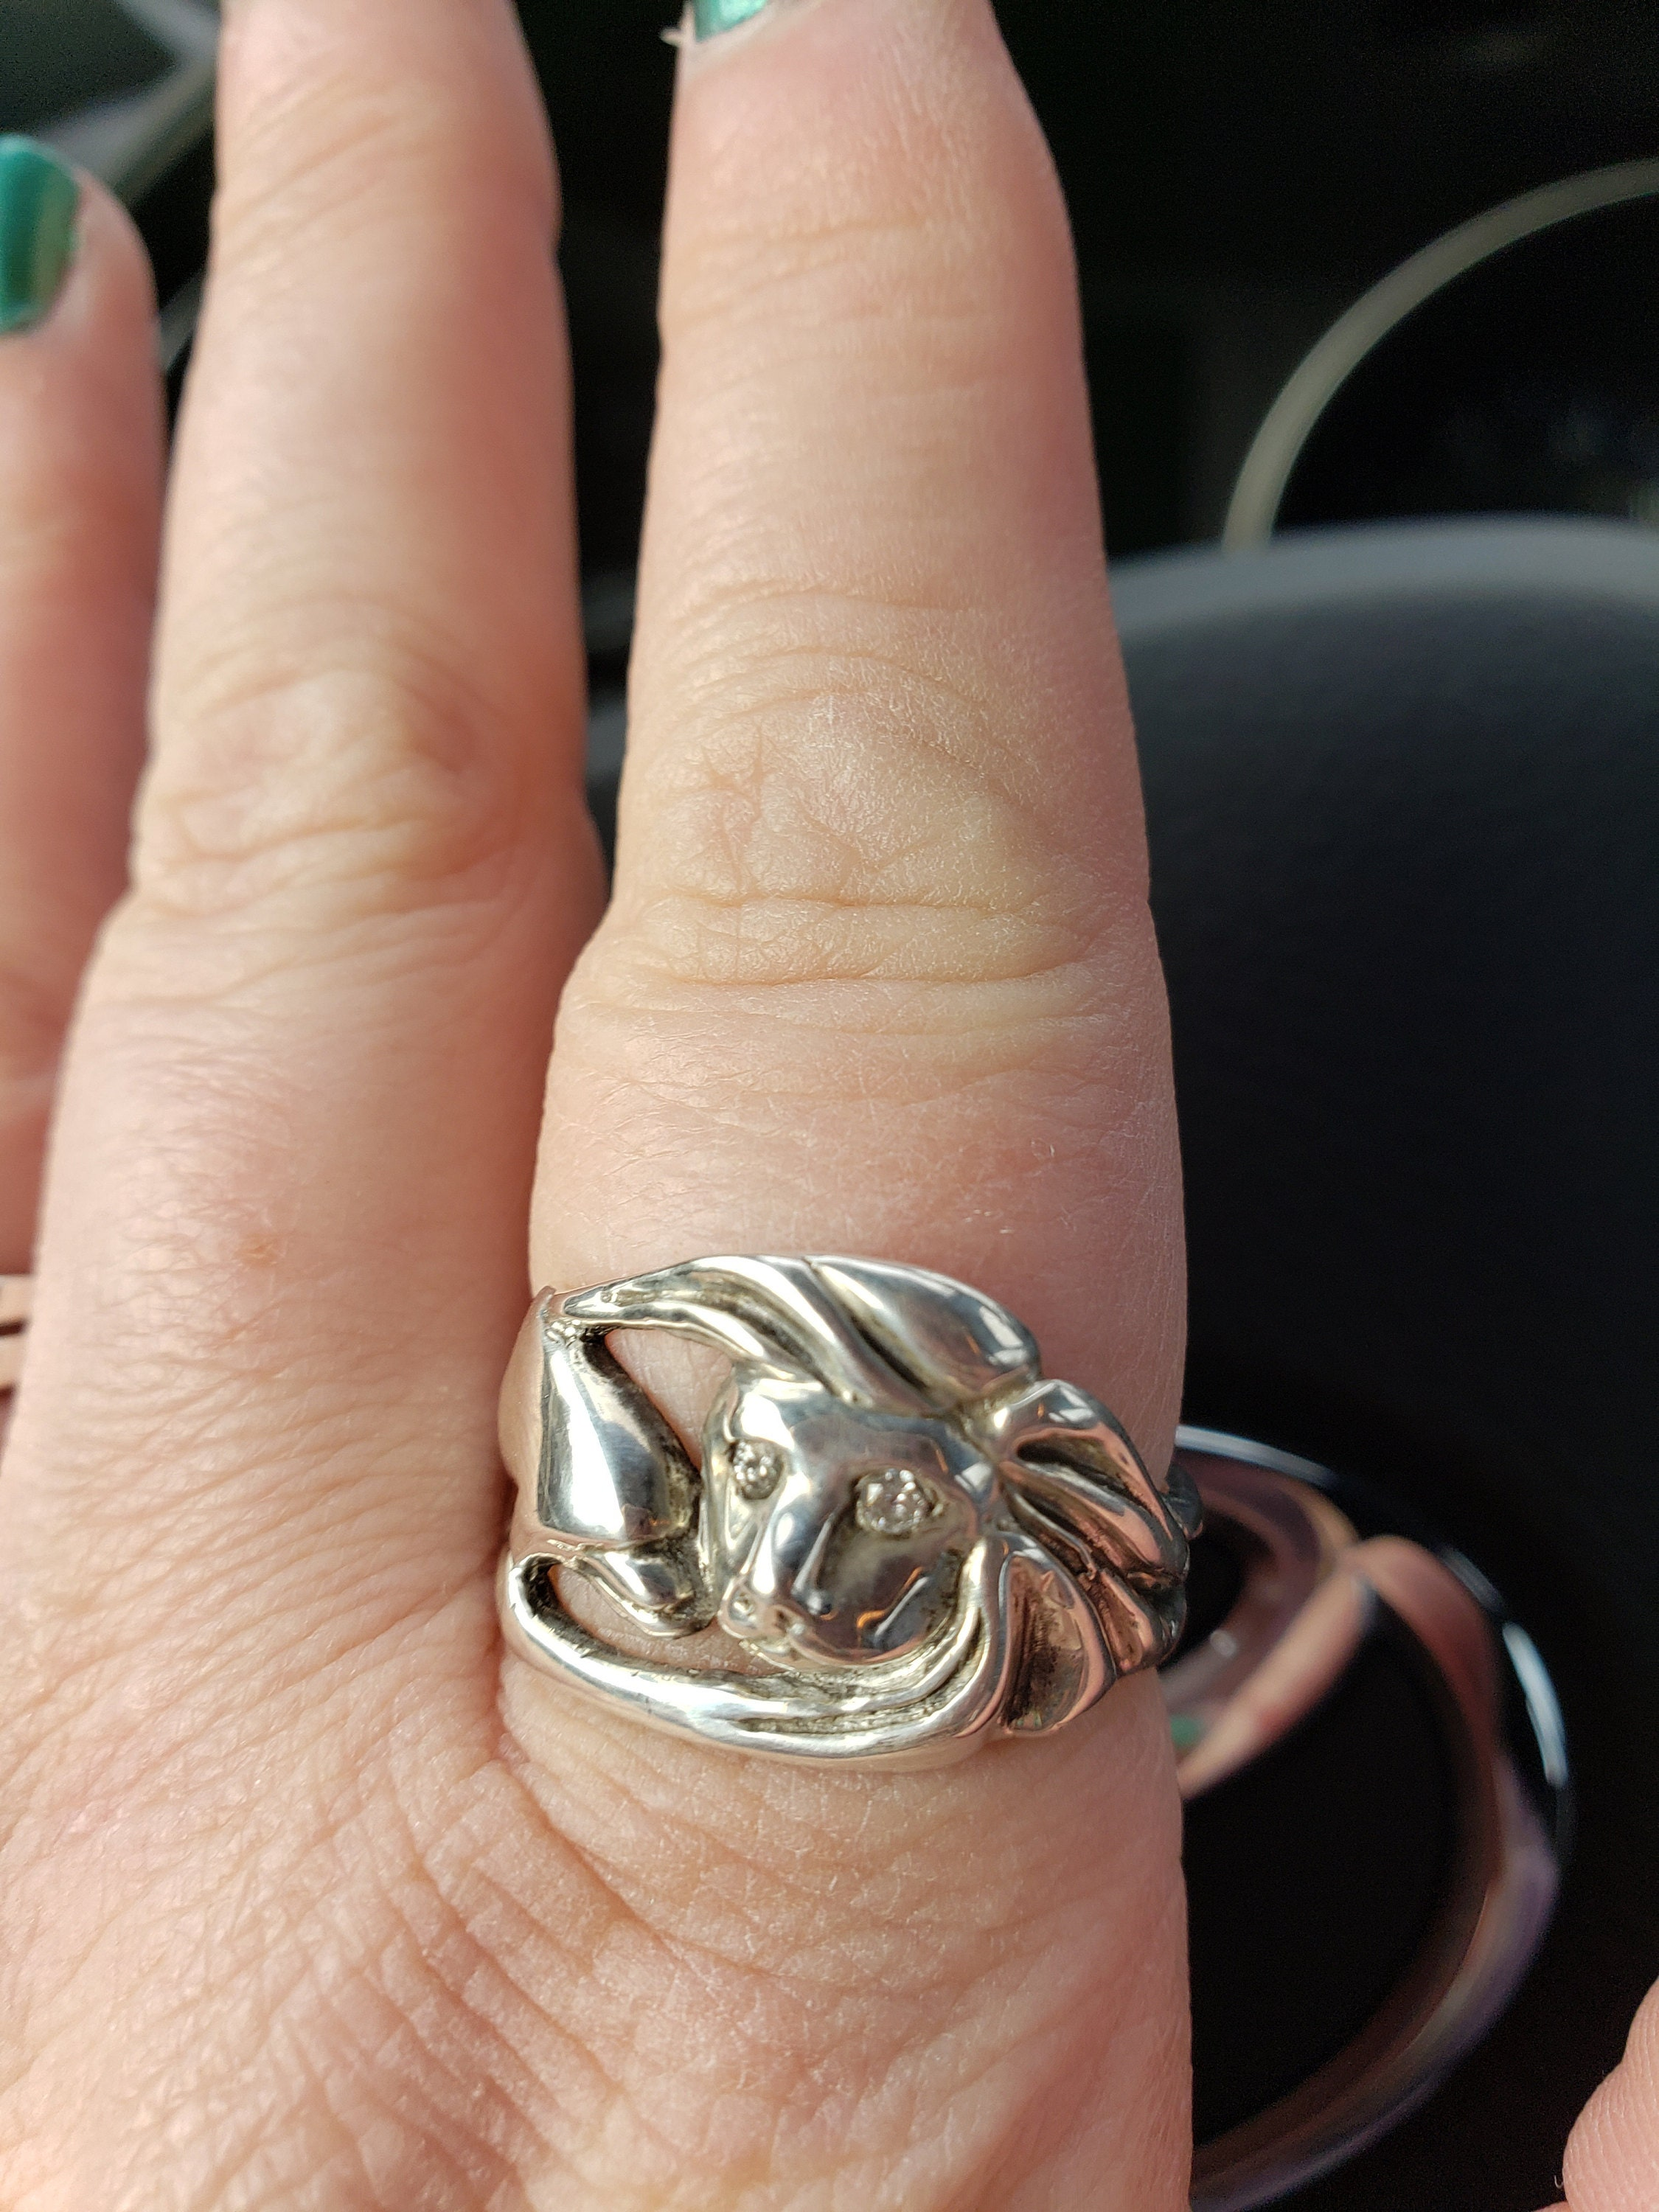 Sara Cayce added a photo of their purchase